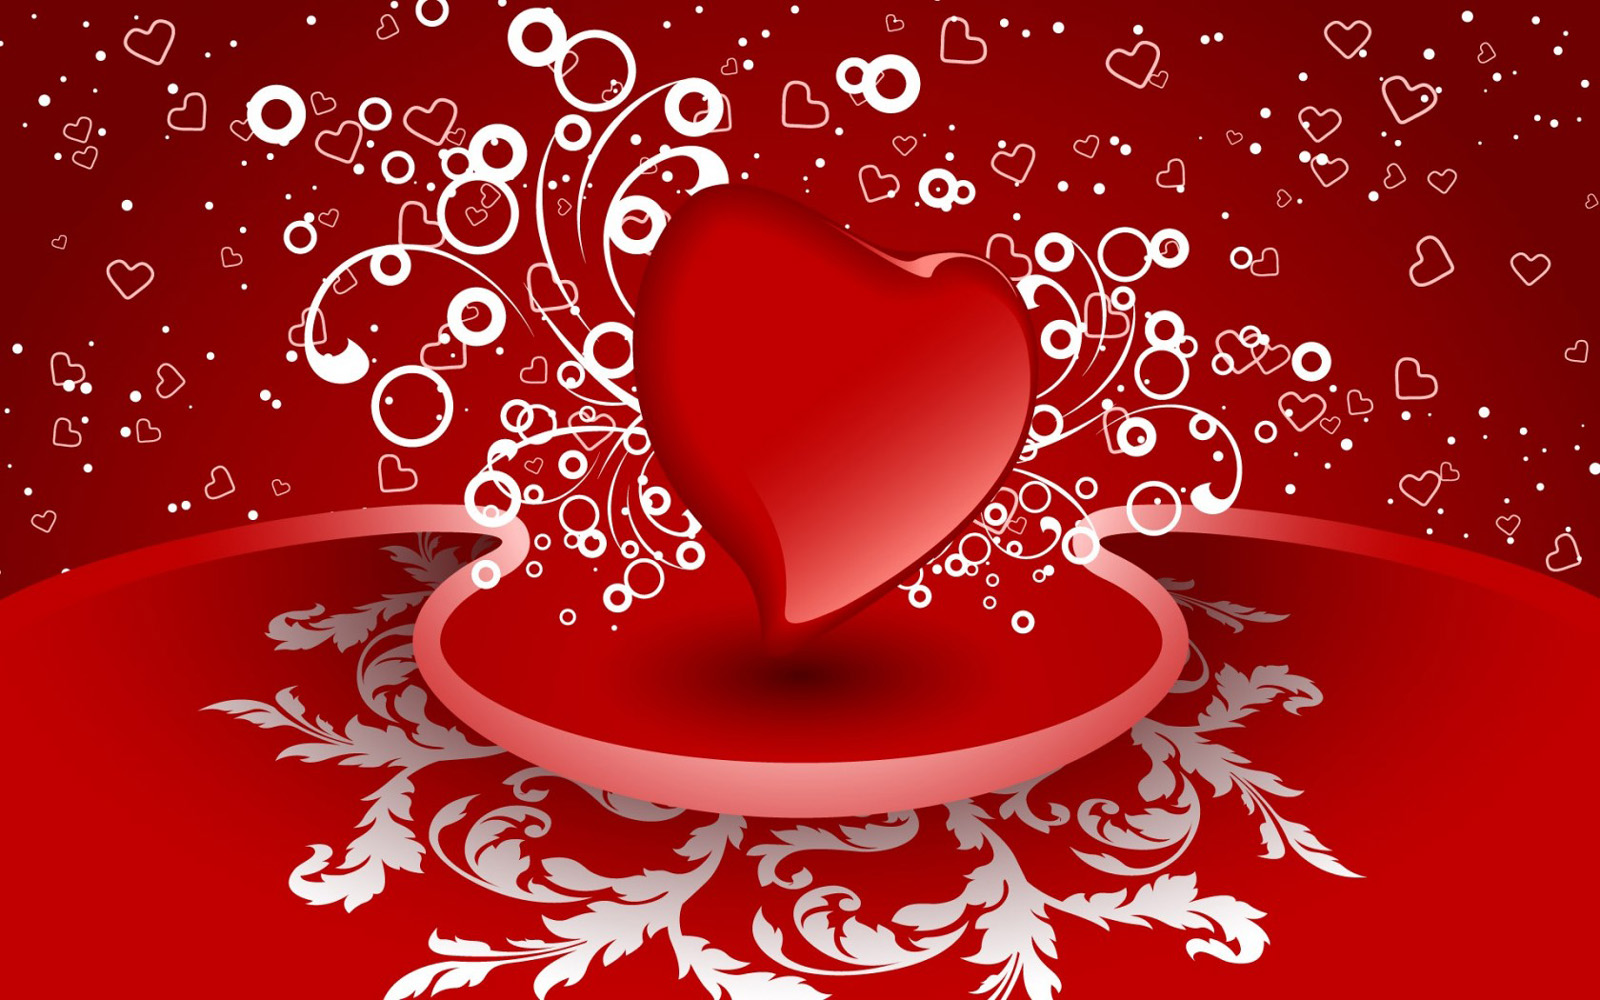 Love Wallpapers Valentine Day : [*Download} Full HD Valentine s Day Wallpapers for Mobile Pc Laptop